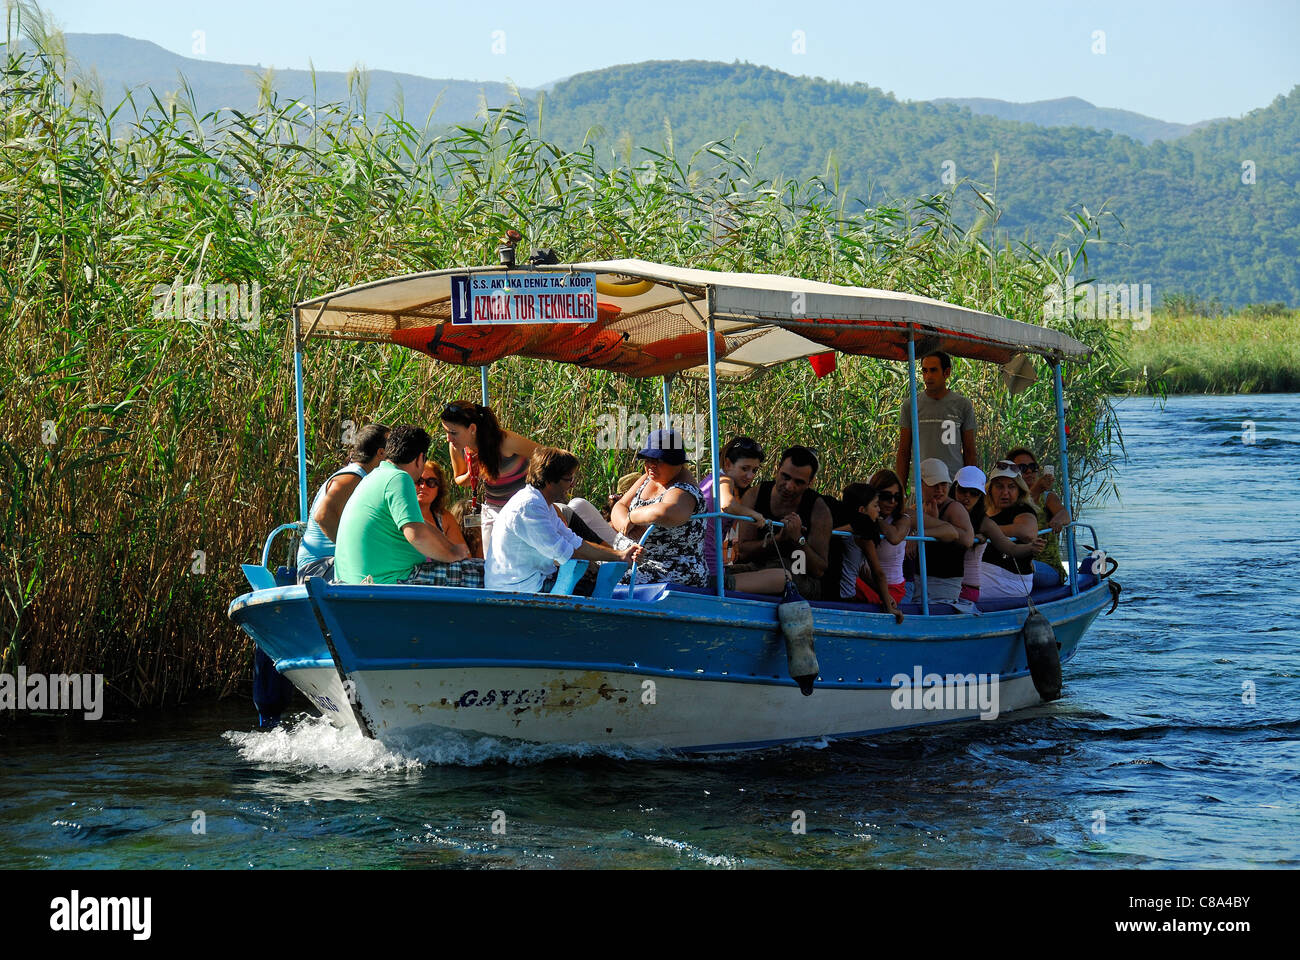 AKYAKA, TURKEY. A pleasure boat taking holidaymakers along the Azmak river in the Gokova conservation area. 2011. Stock Photo